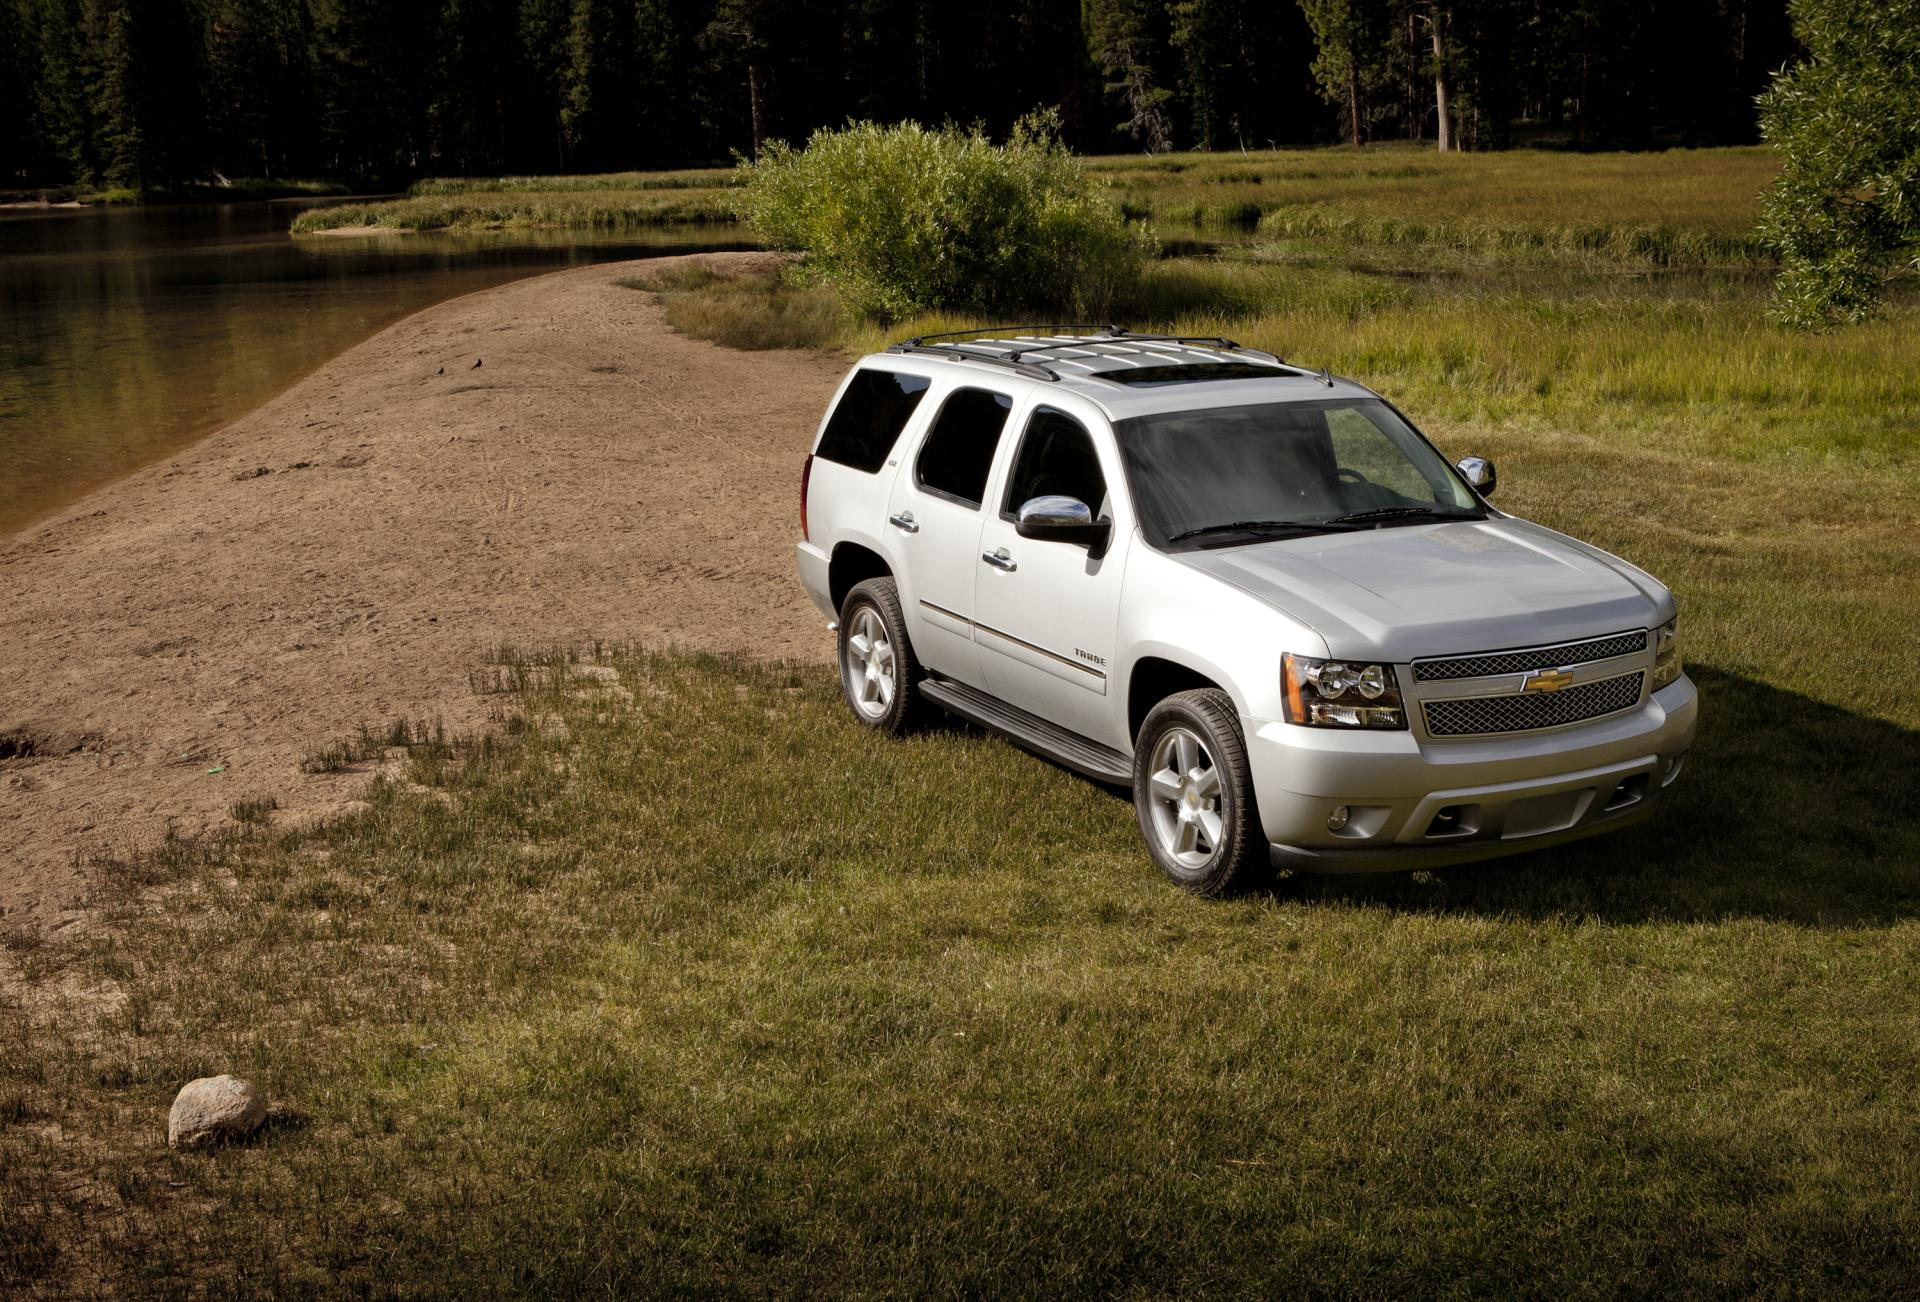 gm tahoe wiki chevrolet info blog price police authority pictures specs